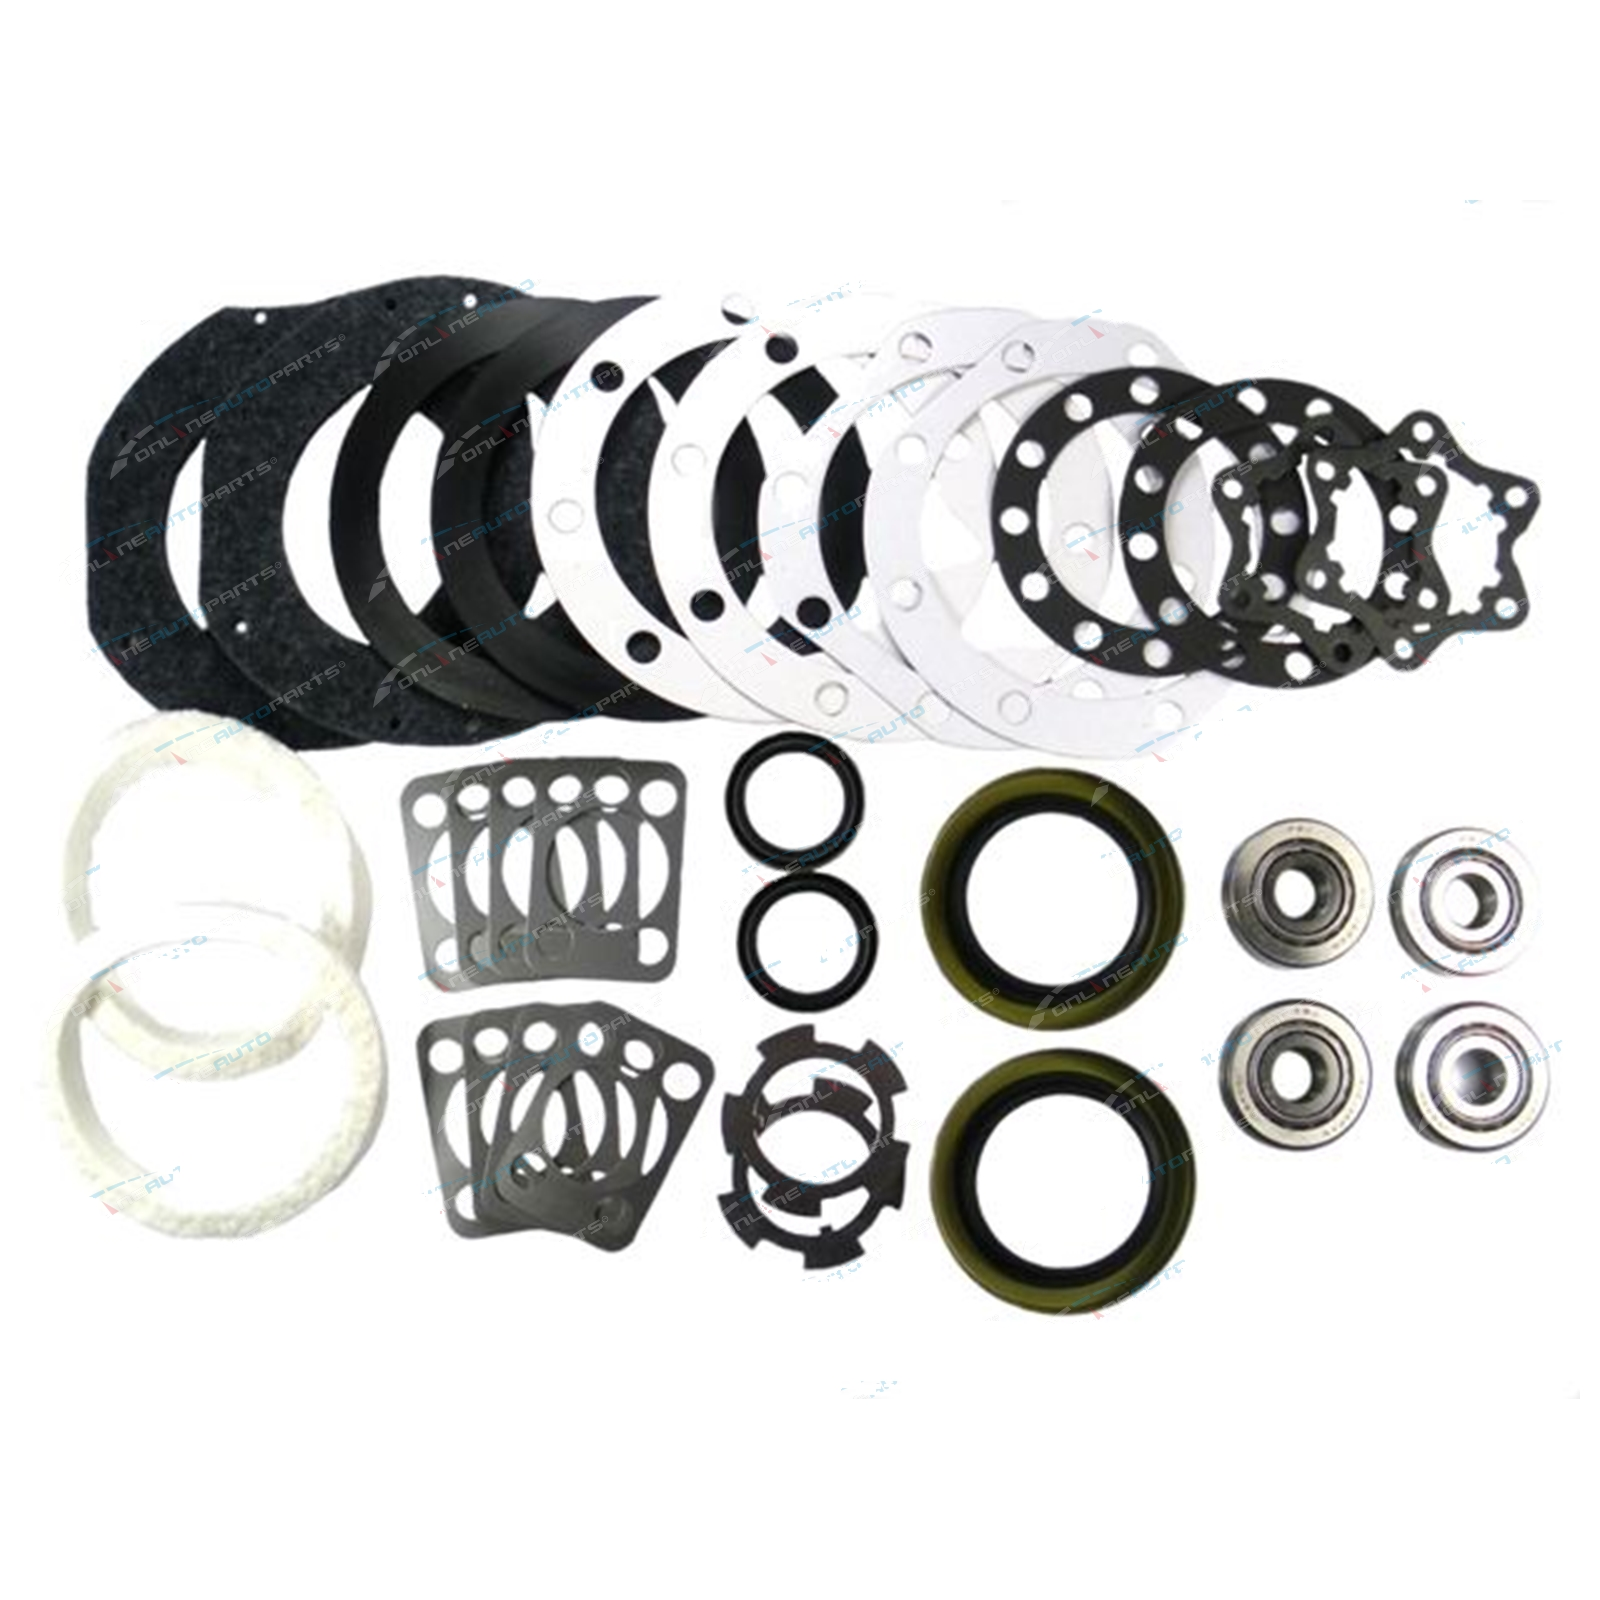 Swivel Hub Kit (Front LH and Front RH) OEM Replacement